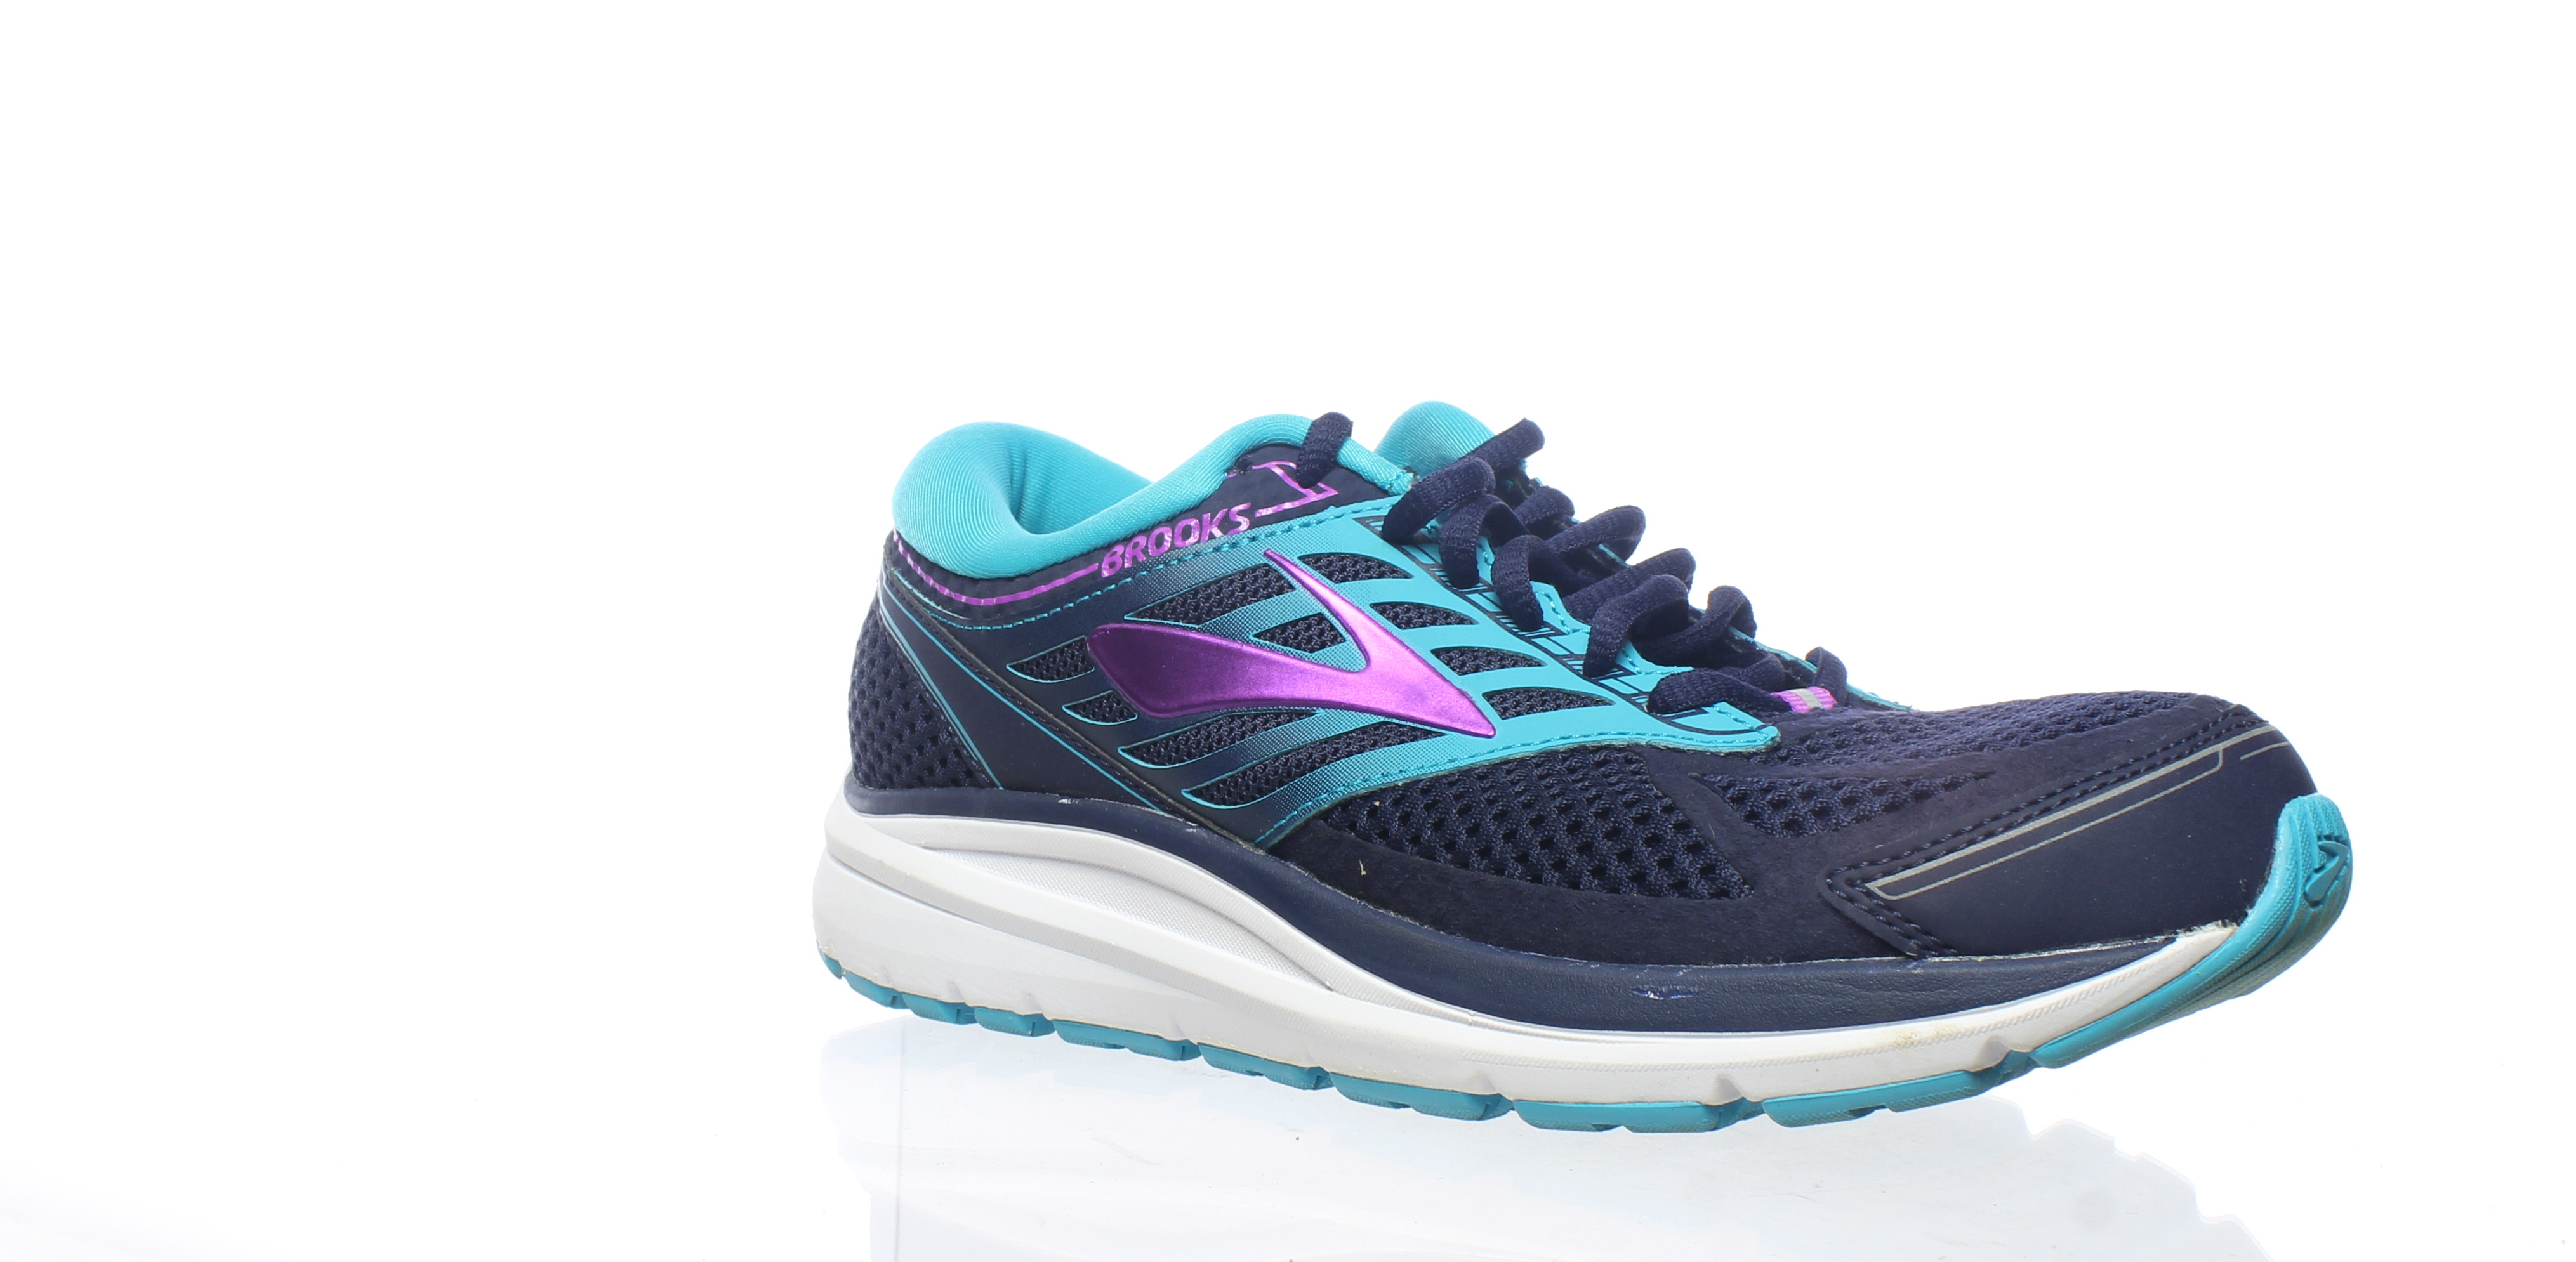 8d4bb5bf5eb2f Details about Brooks Womens Addiction 13 Blue Running Shoes Size 9 (225154)